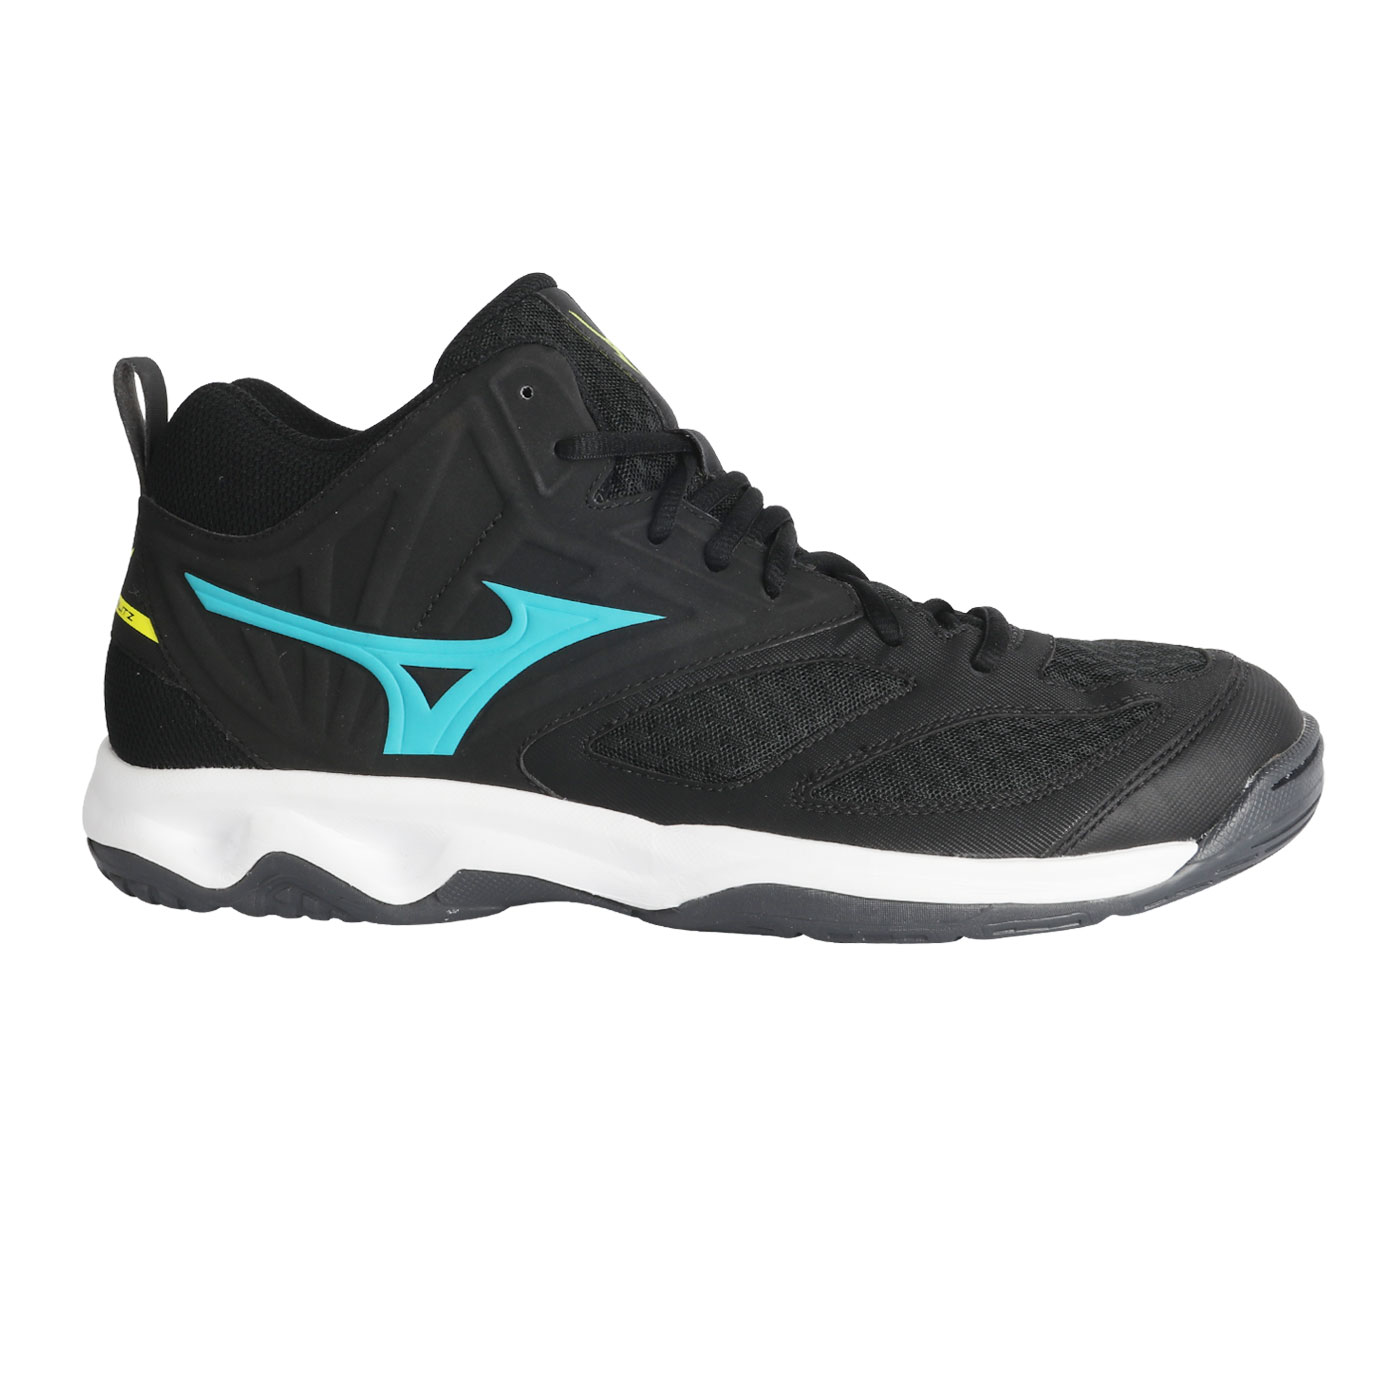 MIZUNO DYNABLITZ MID-BLACK/BLUE ATOLL/FLASH